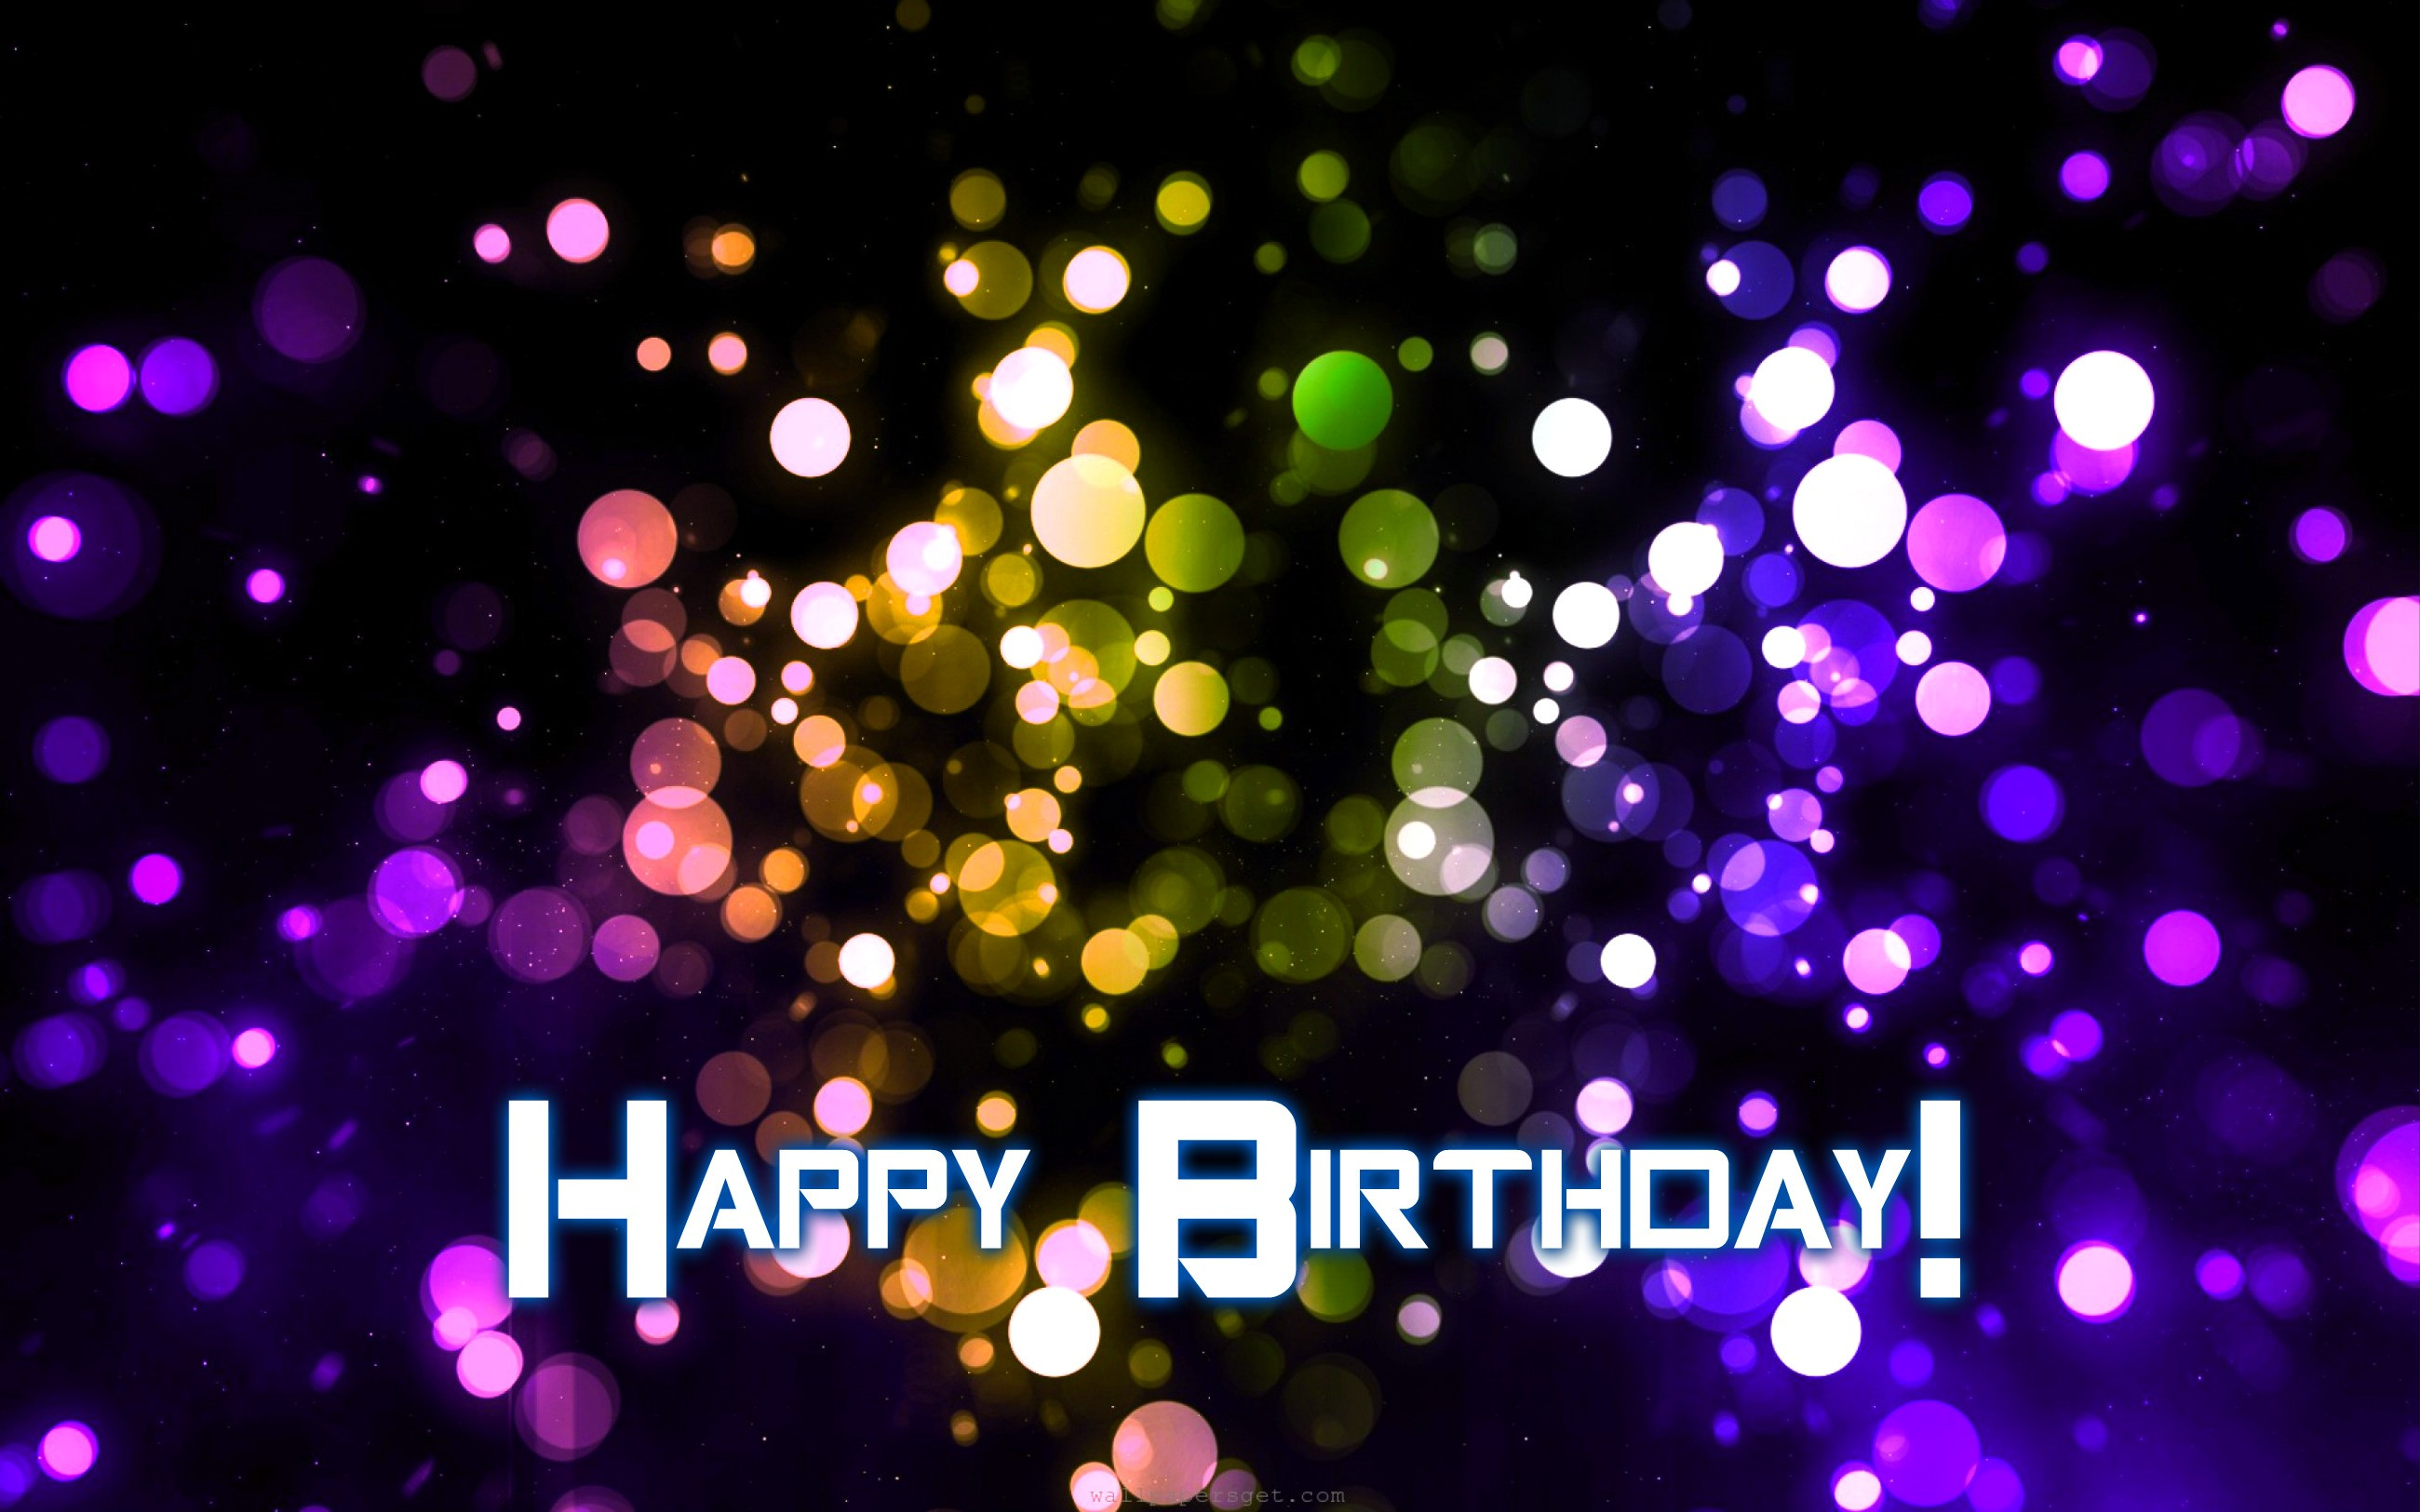 birthday wishes high quality images ; happy-birthday-night-cards